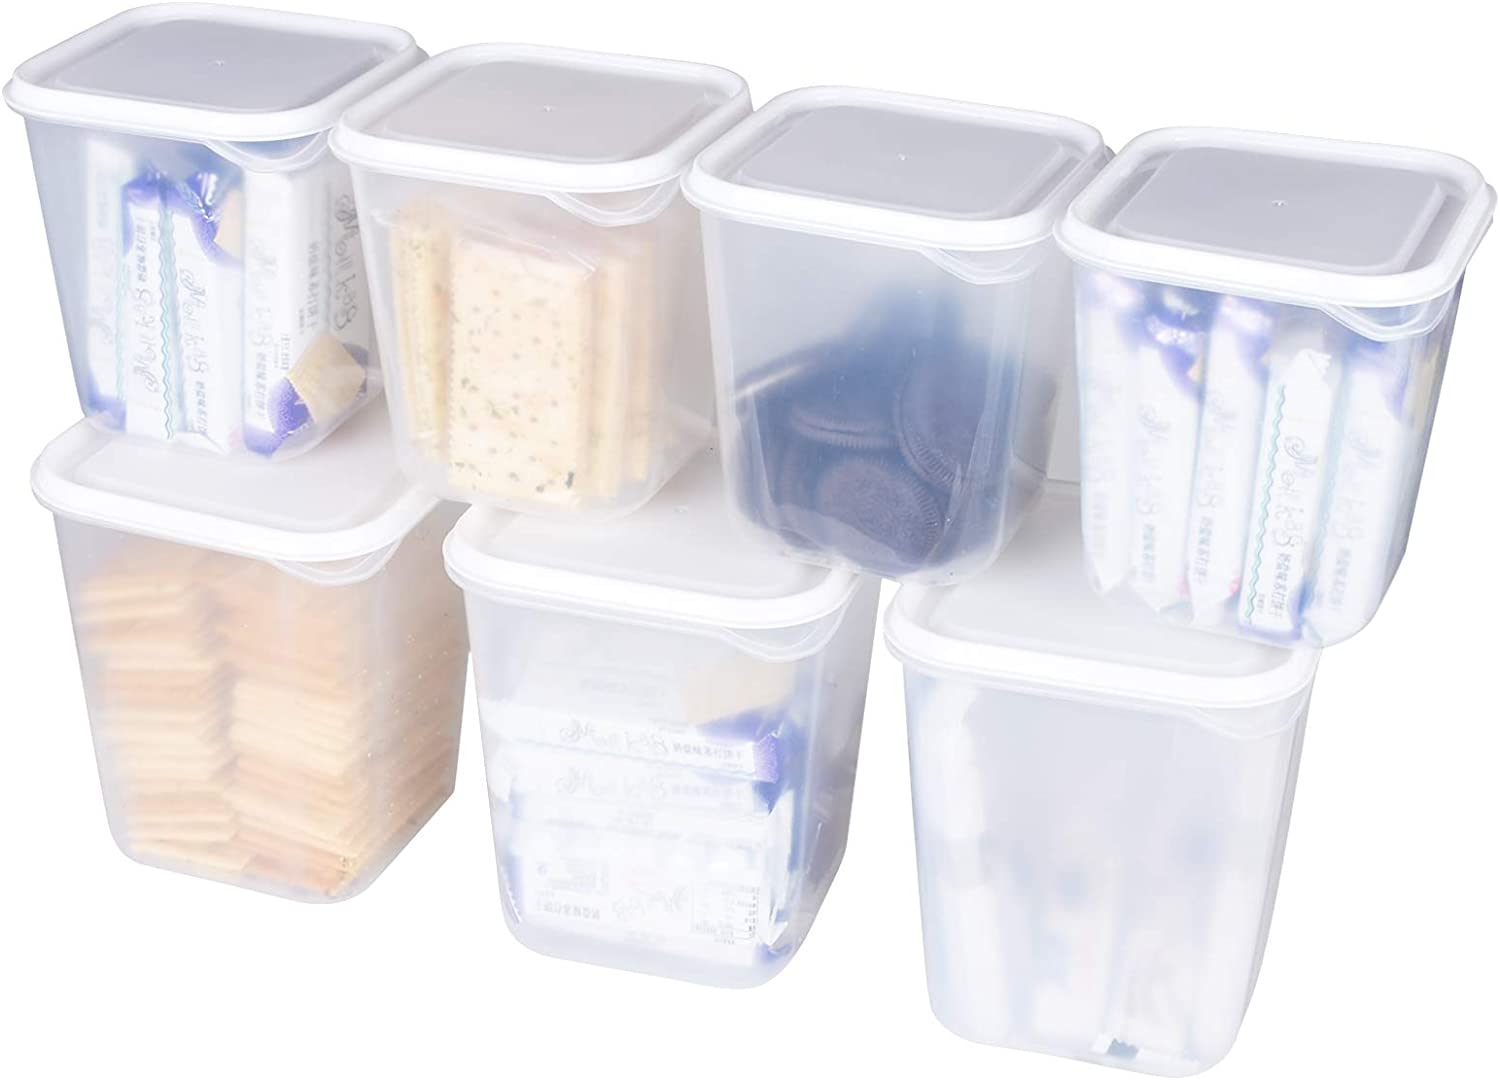 Pantry Organization and Storage, 7 Pieces DINOKA Airtight Cereal Dry Food Storage Container Set Large Kitchen & Pantry Organization BPA Free Plastic Storage Canisters with Easy Lock Lids and 8 Labels